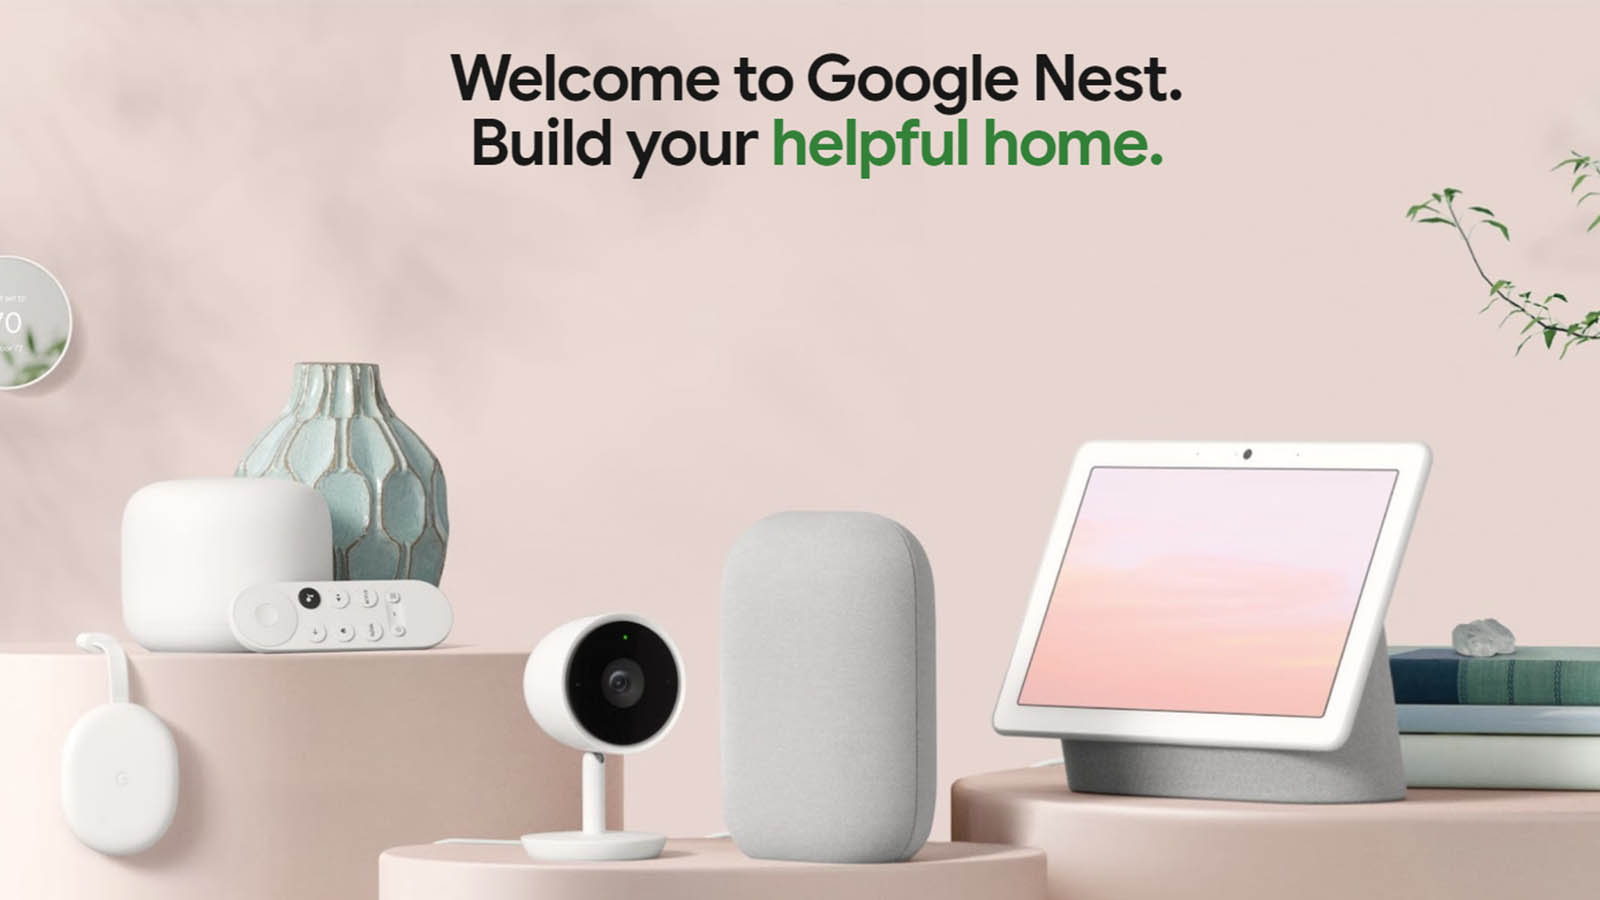 The Nest website now redirects you to the Google Store